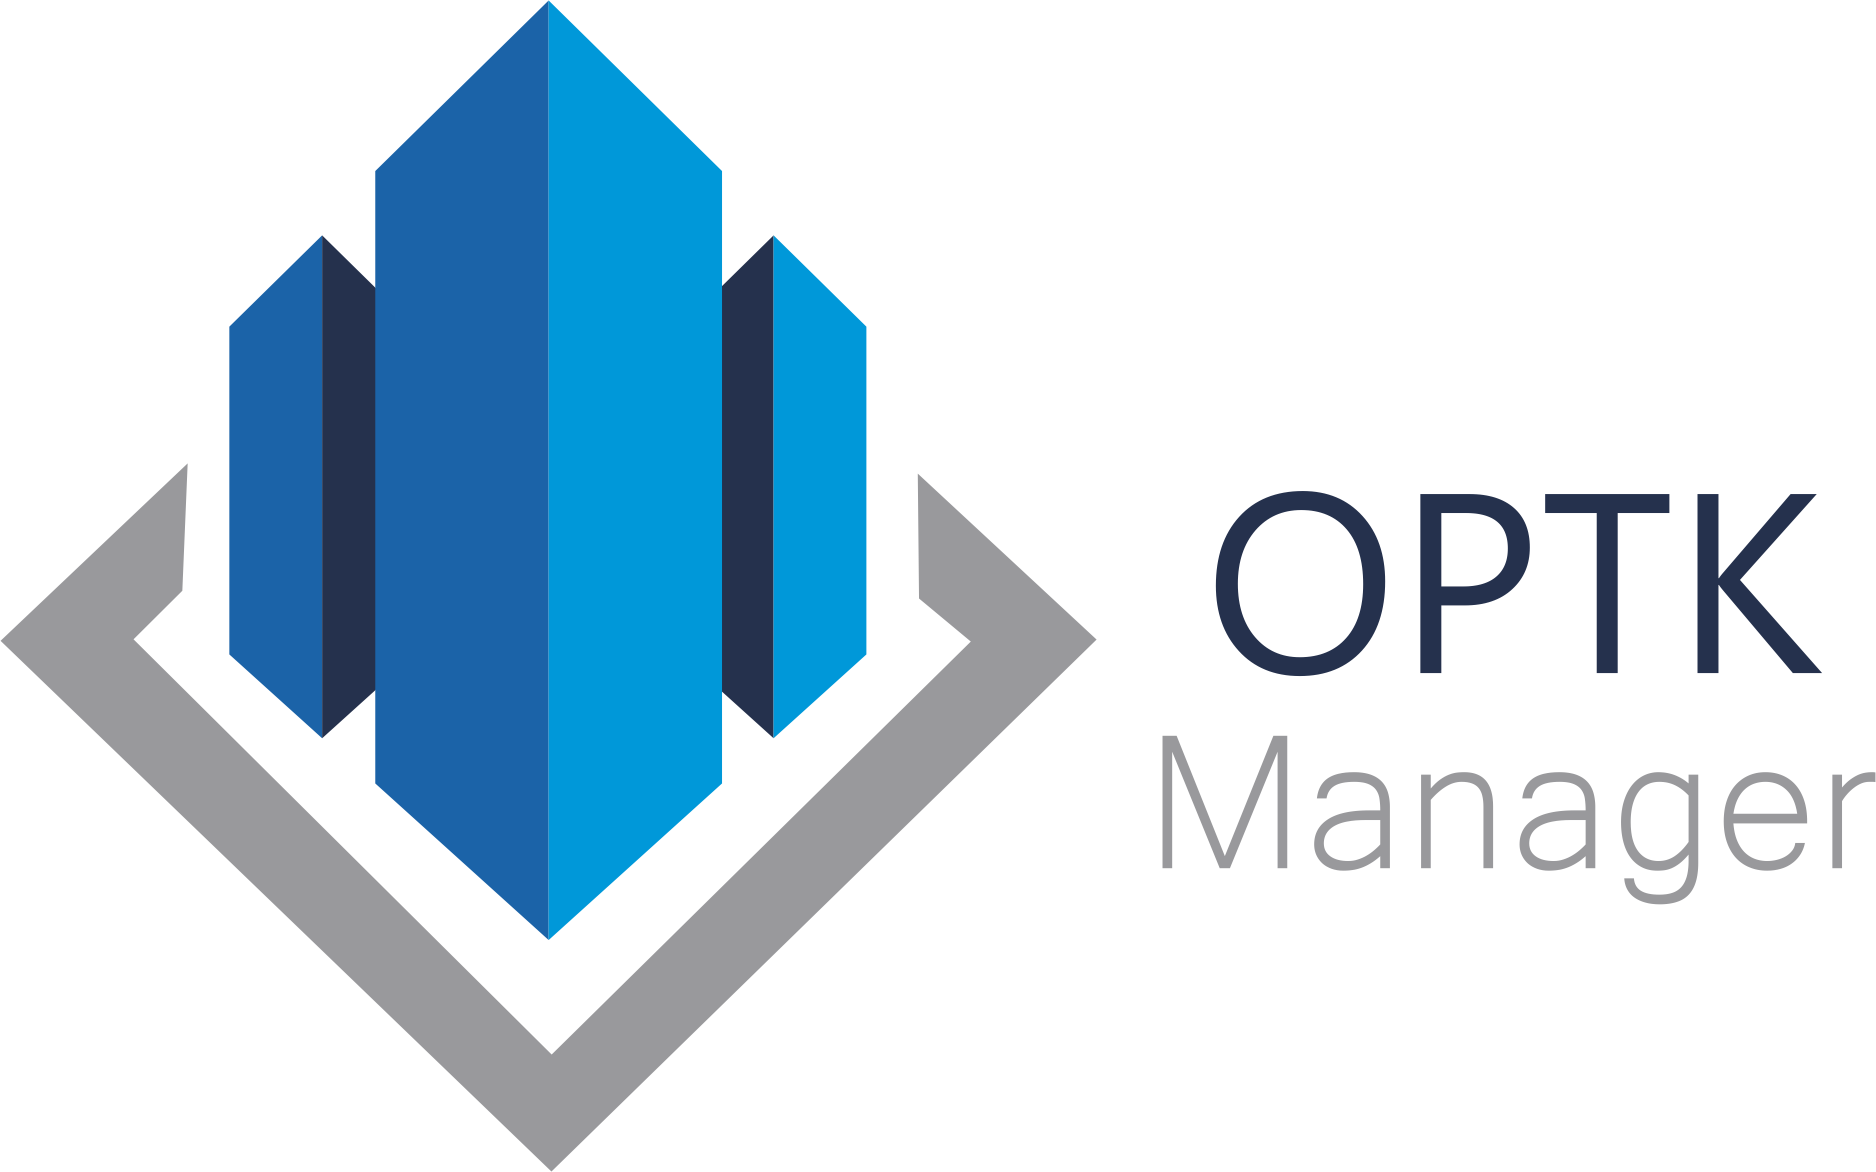 Optk Manager